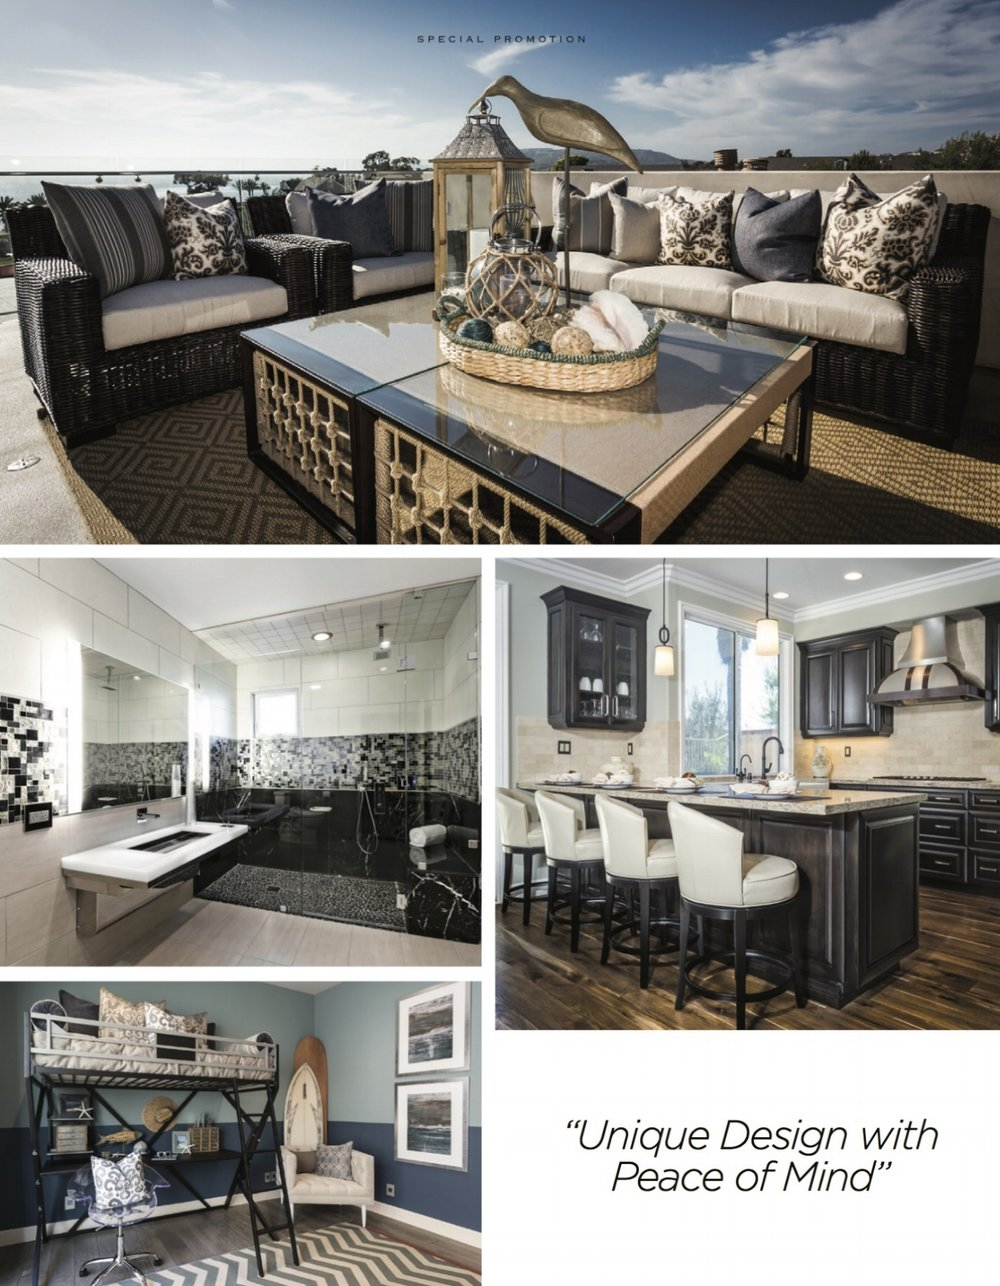 """A collection of 4 images showing some of Audra's remodels with a quote from her """"unique design with peace of mind"""". Images show a rooftop deck design with outdoor furniture, a luxury black & white bathroom, a high end kitchen with four counterstools, and a blue bedroom with a surfboard designed specifically for a teen boy."""